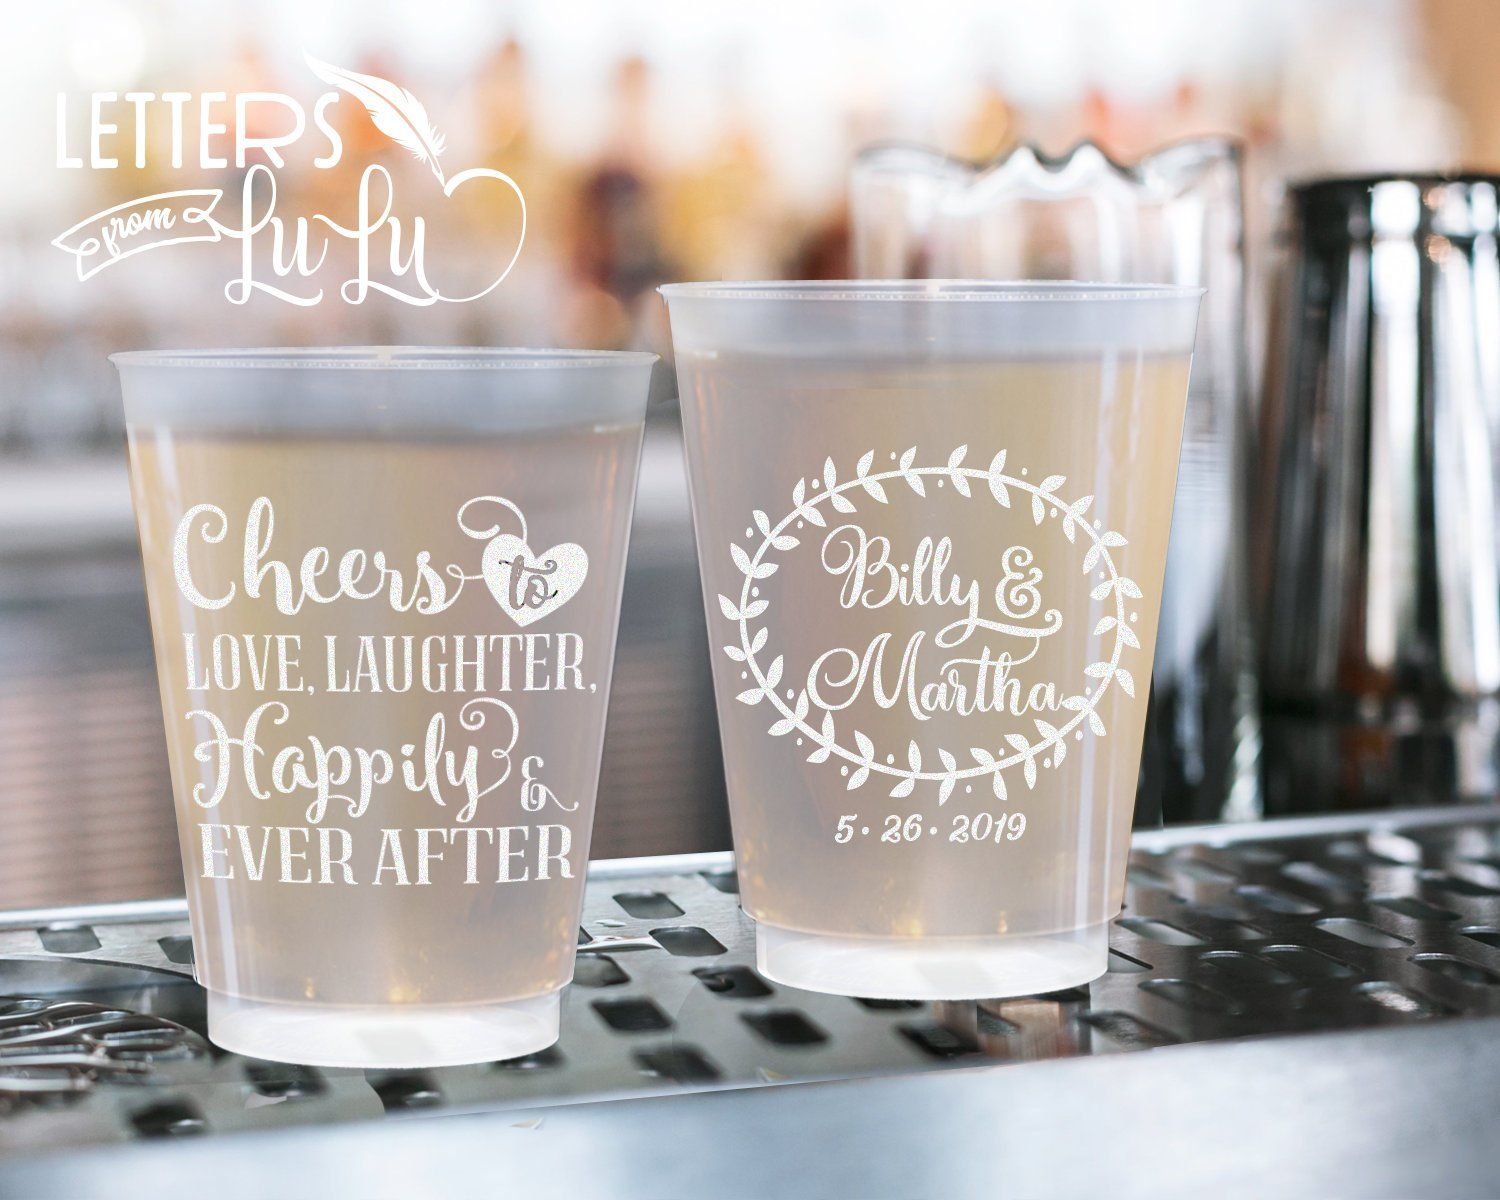 Personalized Cups Birthday Cups Wedding Cups Customized Drinking Cups Frosted Cups Personalize Wedding Cups Personalized Frosted Wedding Cups Wedding Cups